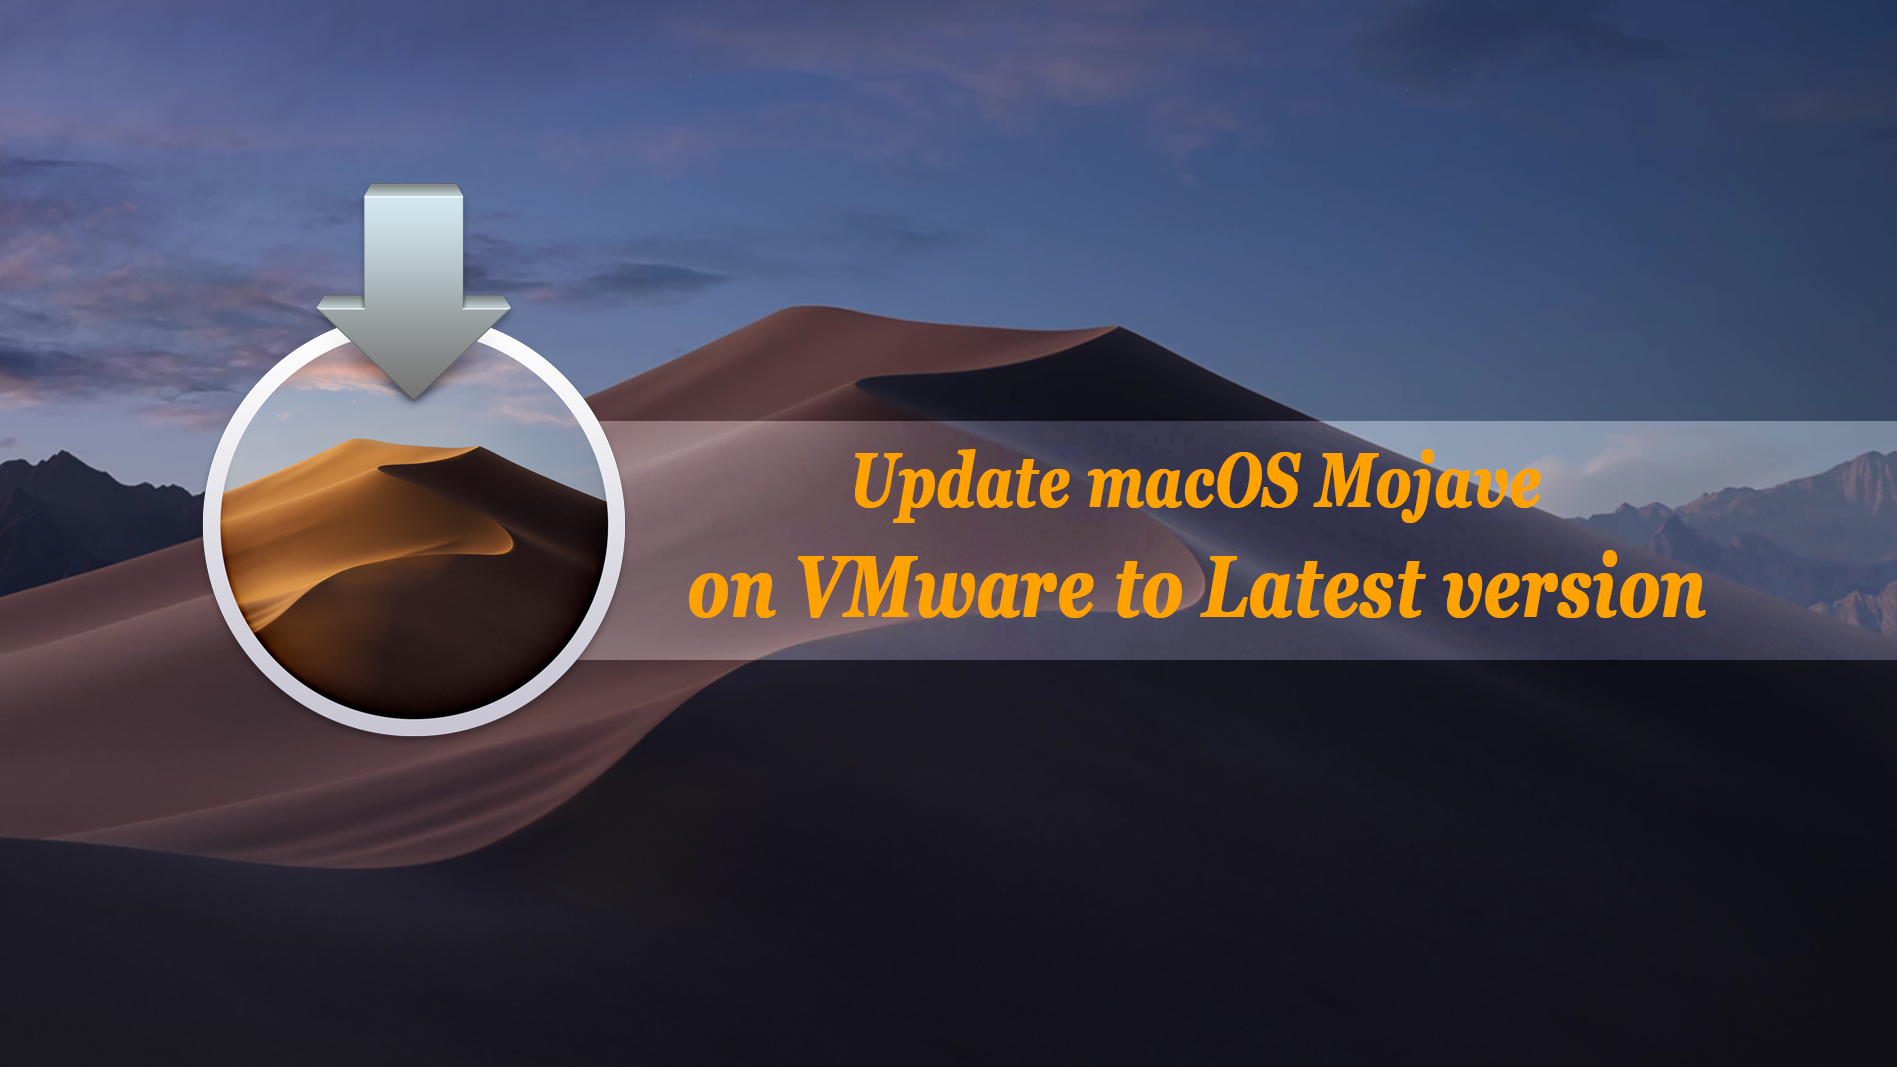 How to Update macOS Mojave on VMware to Latest version